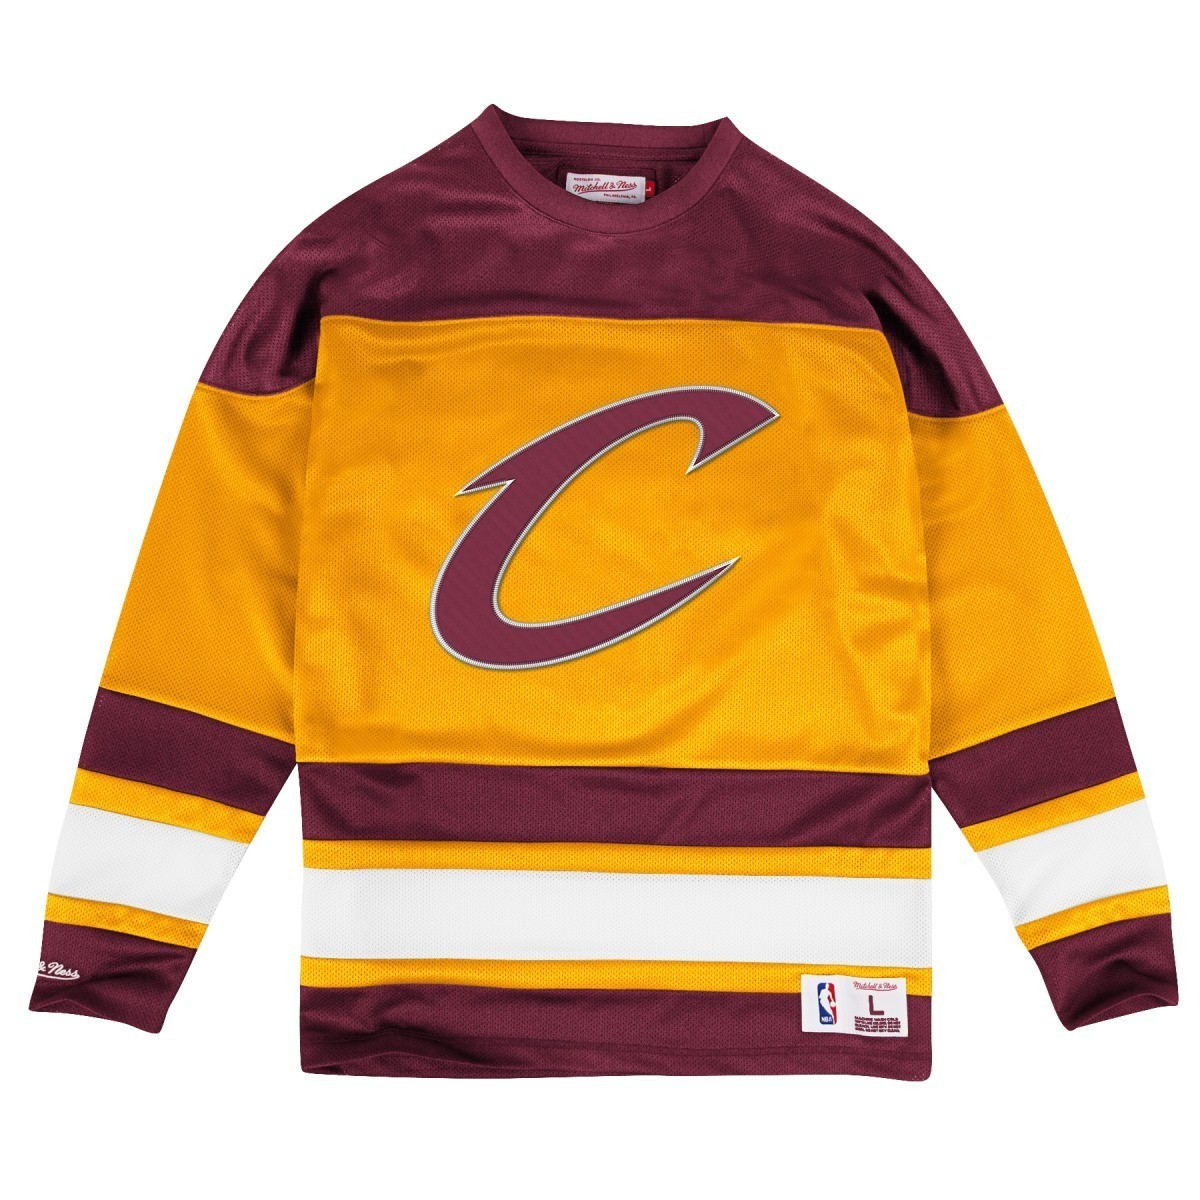 huge selection of 84960 03bb6 Details about Cleveland Cavaliers Mitchell & Ness NBA Mesh Jersey Long  Sleeve Crew Shirt